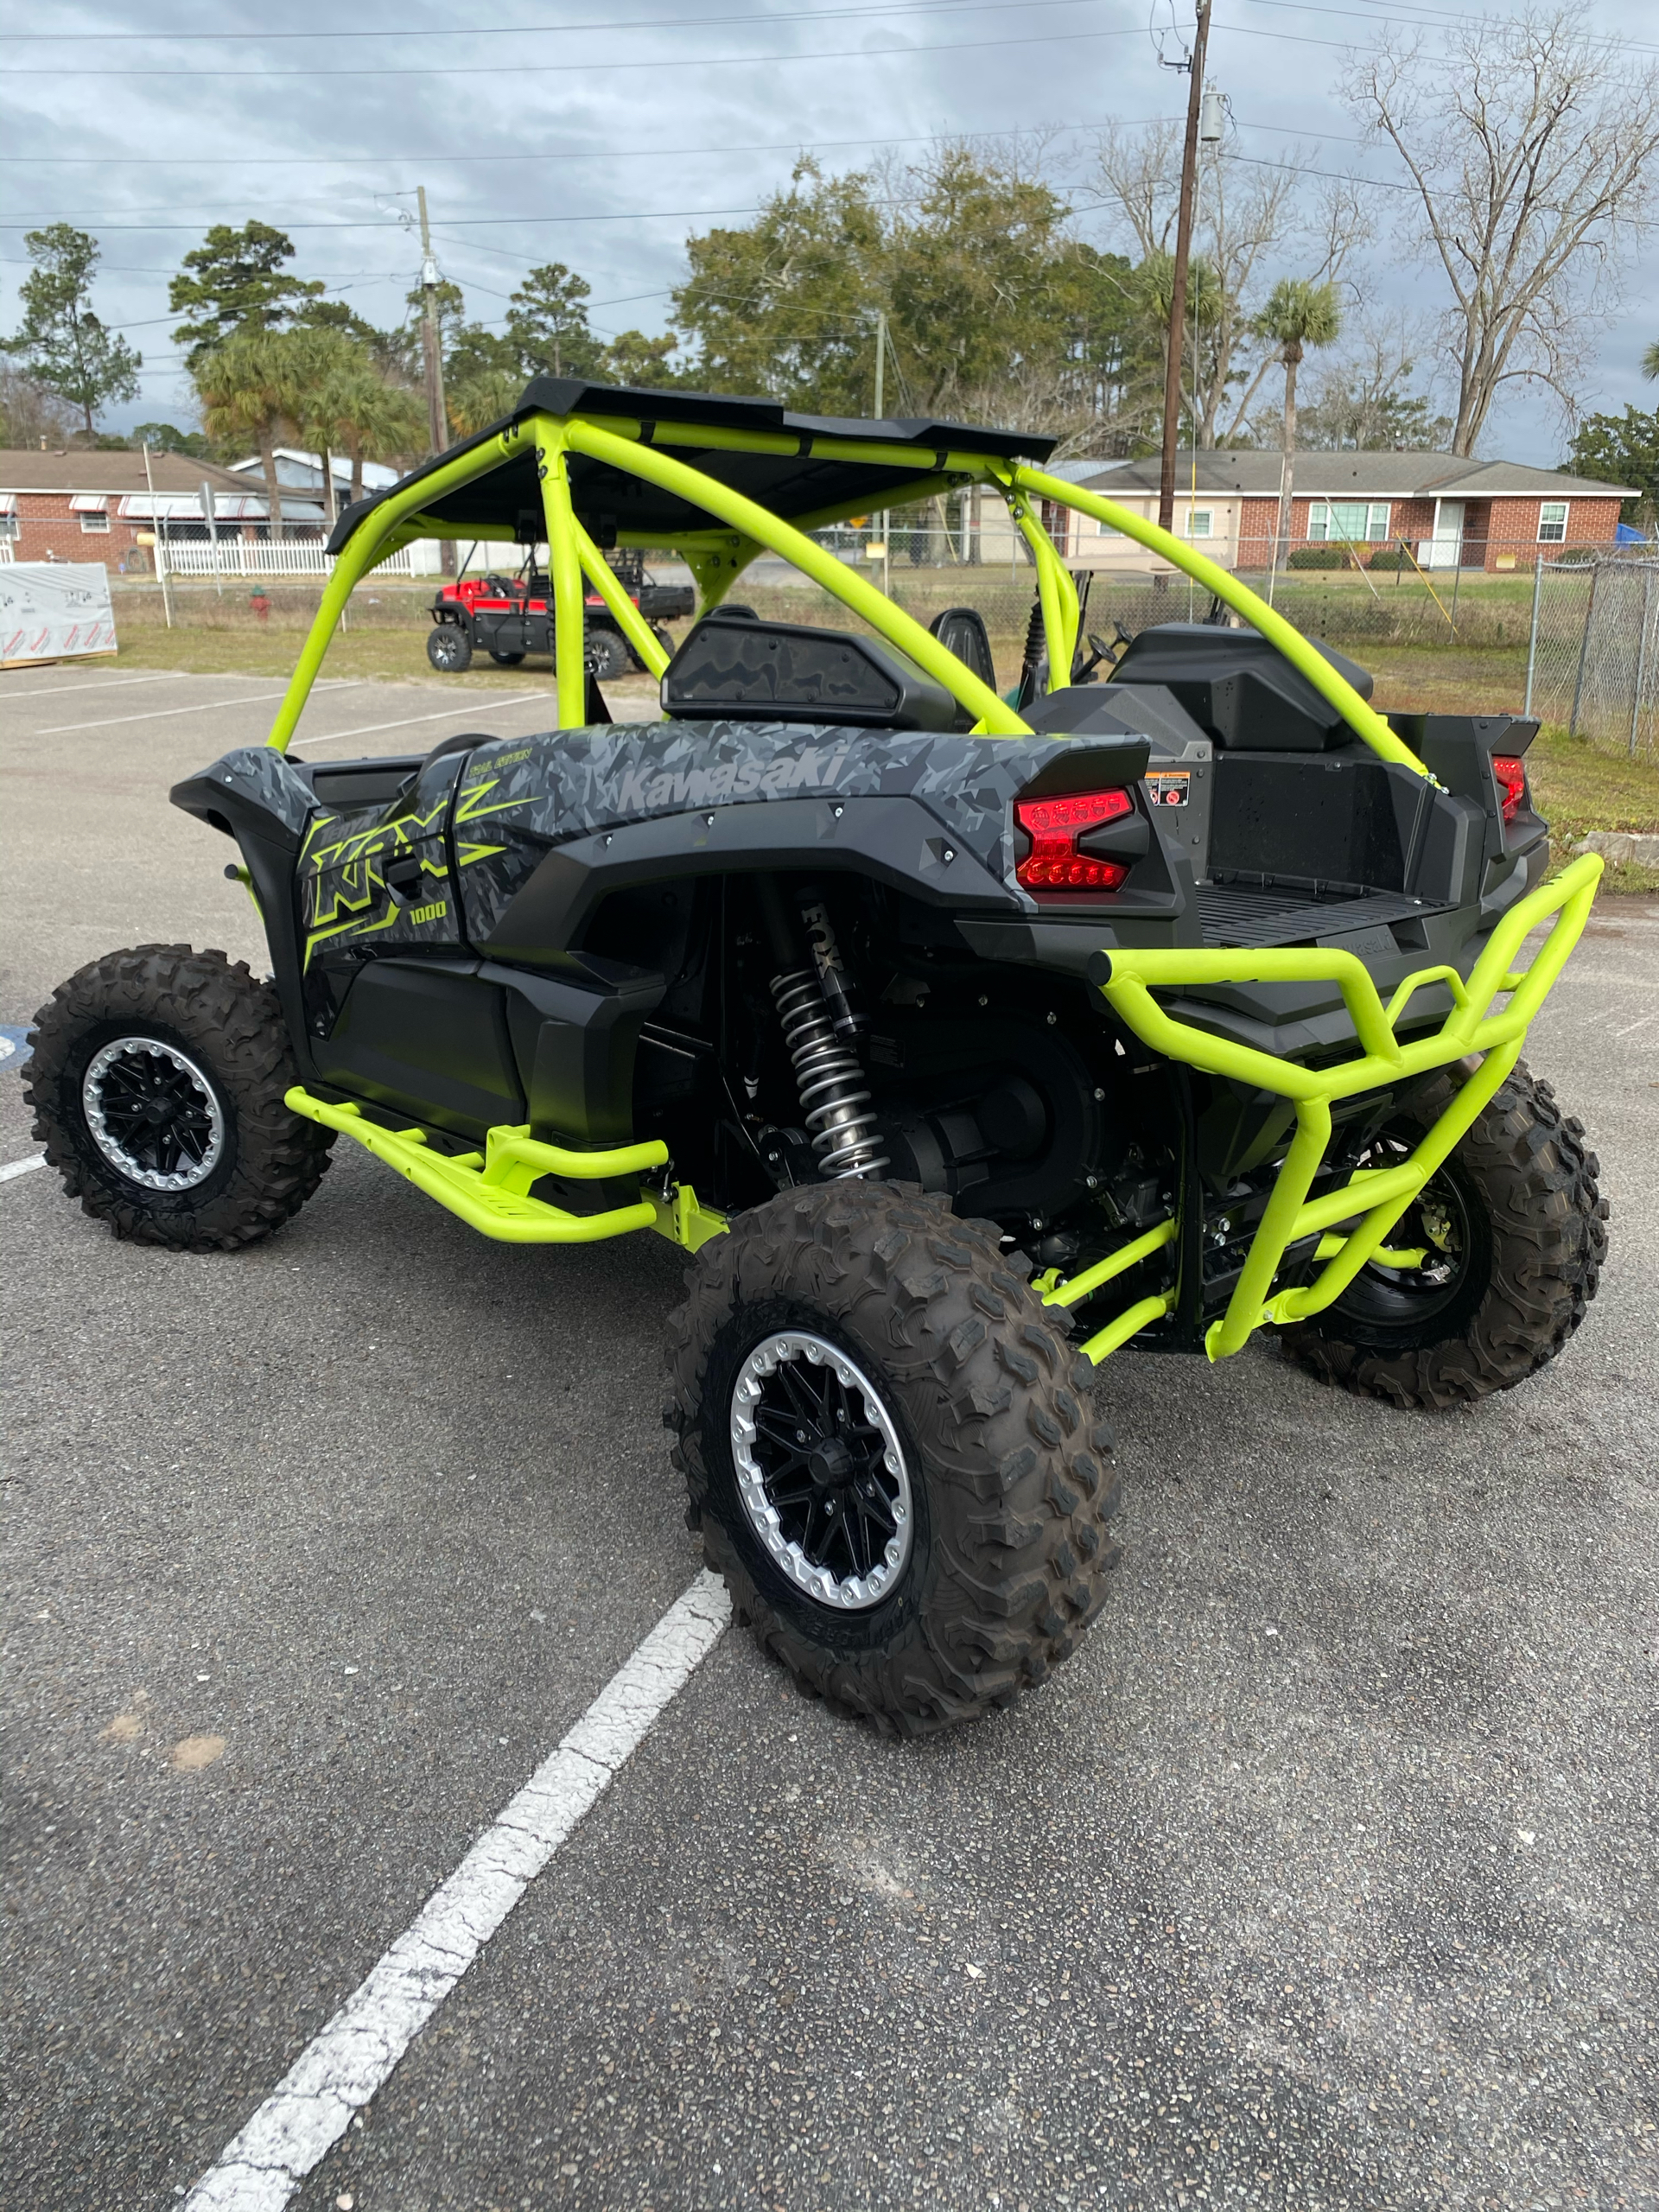 2021 Kawasaki Teryx KRX 1000 Trail Edition in Brunswick, Georgia - Photo 4